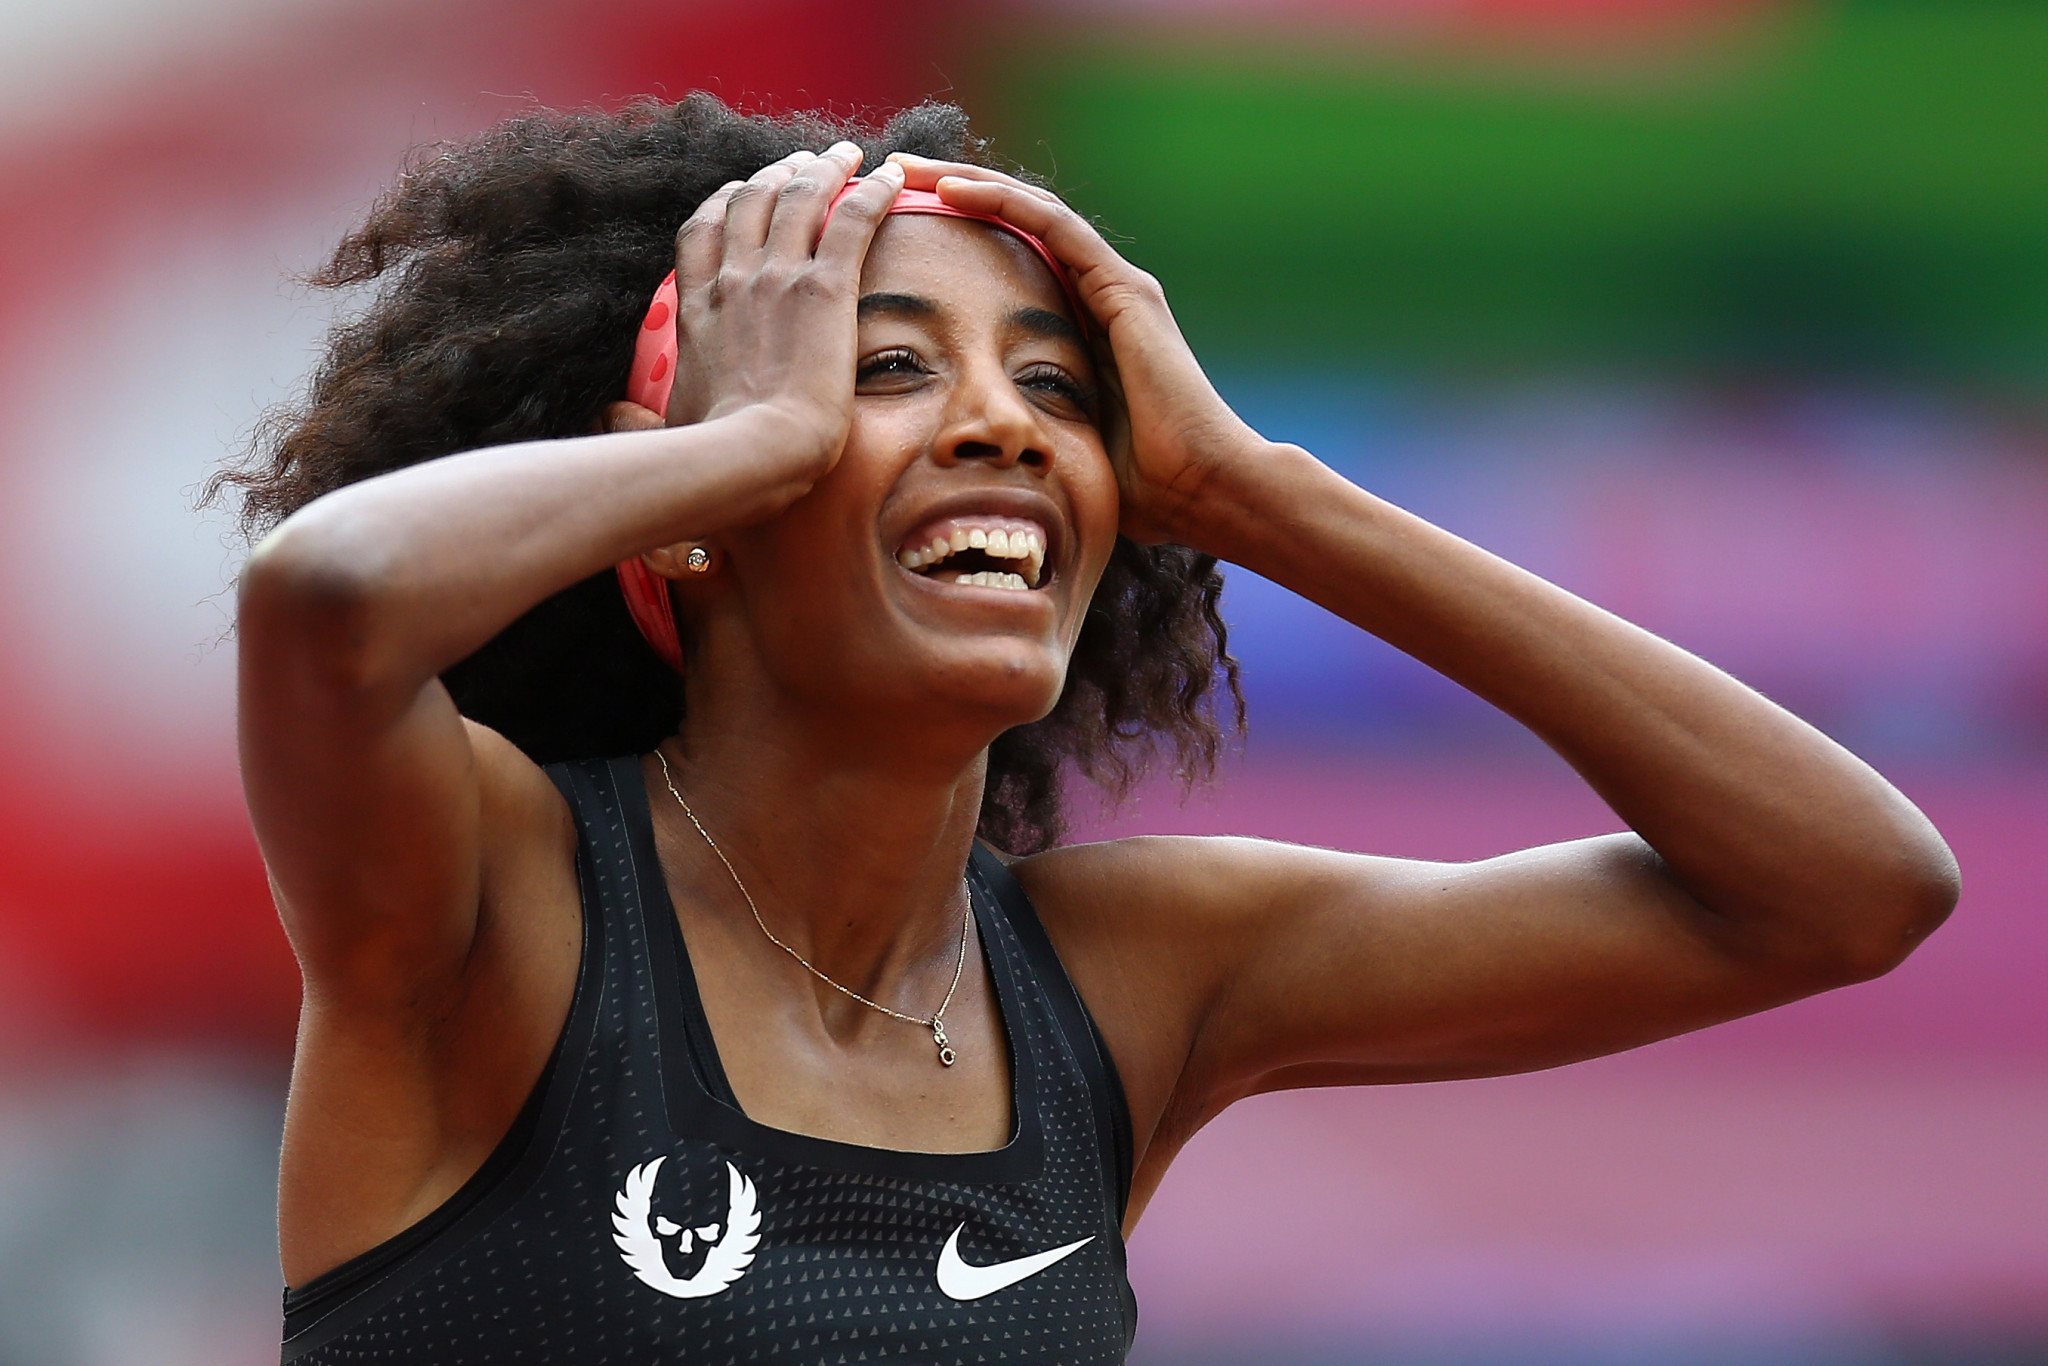 Hassan stars in women's mile as Korir leads 800m charge at IAAF Diamond League in London